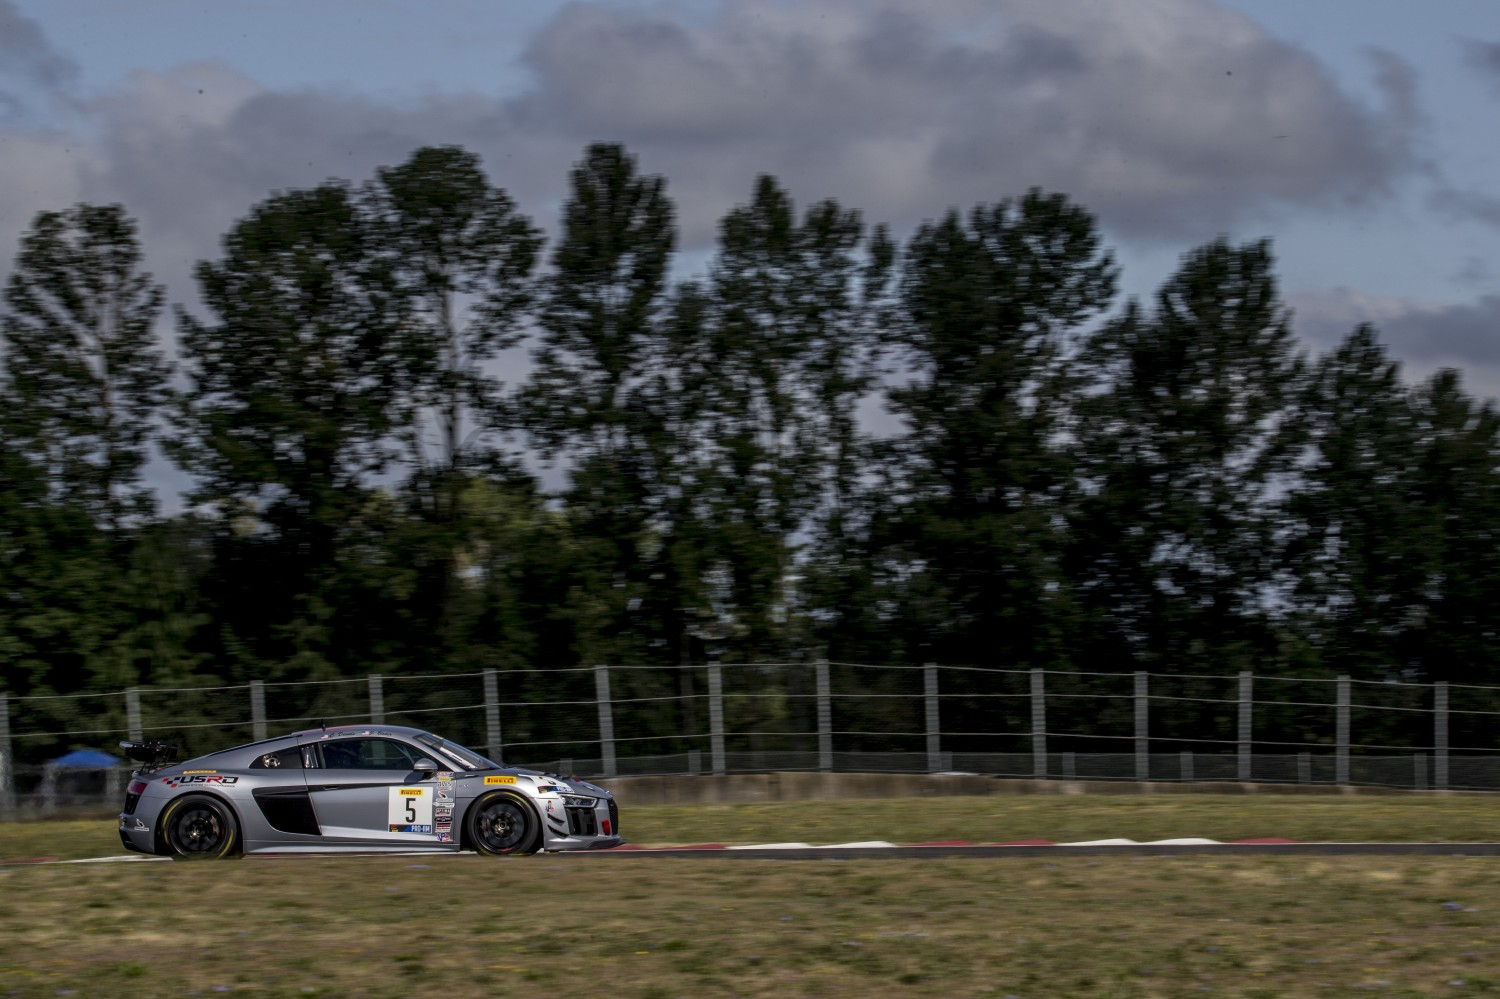 #5 Audi R8 LMS GT4 of Casey Dennis and Jeff Bader, Rose Cup Races, Portland OR  | Brian Cleary/SRO